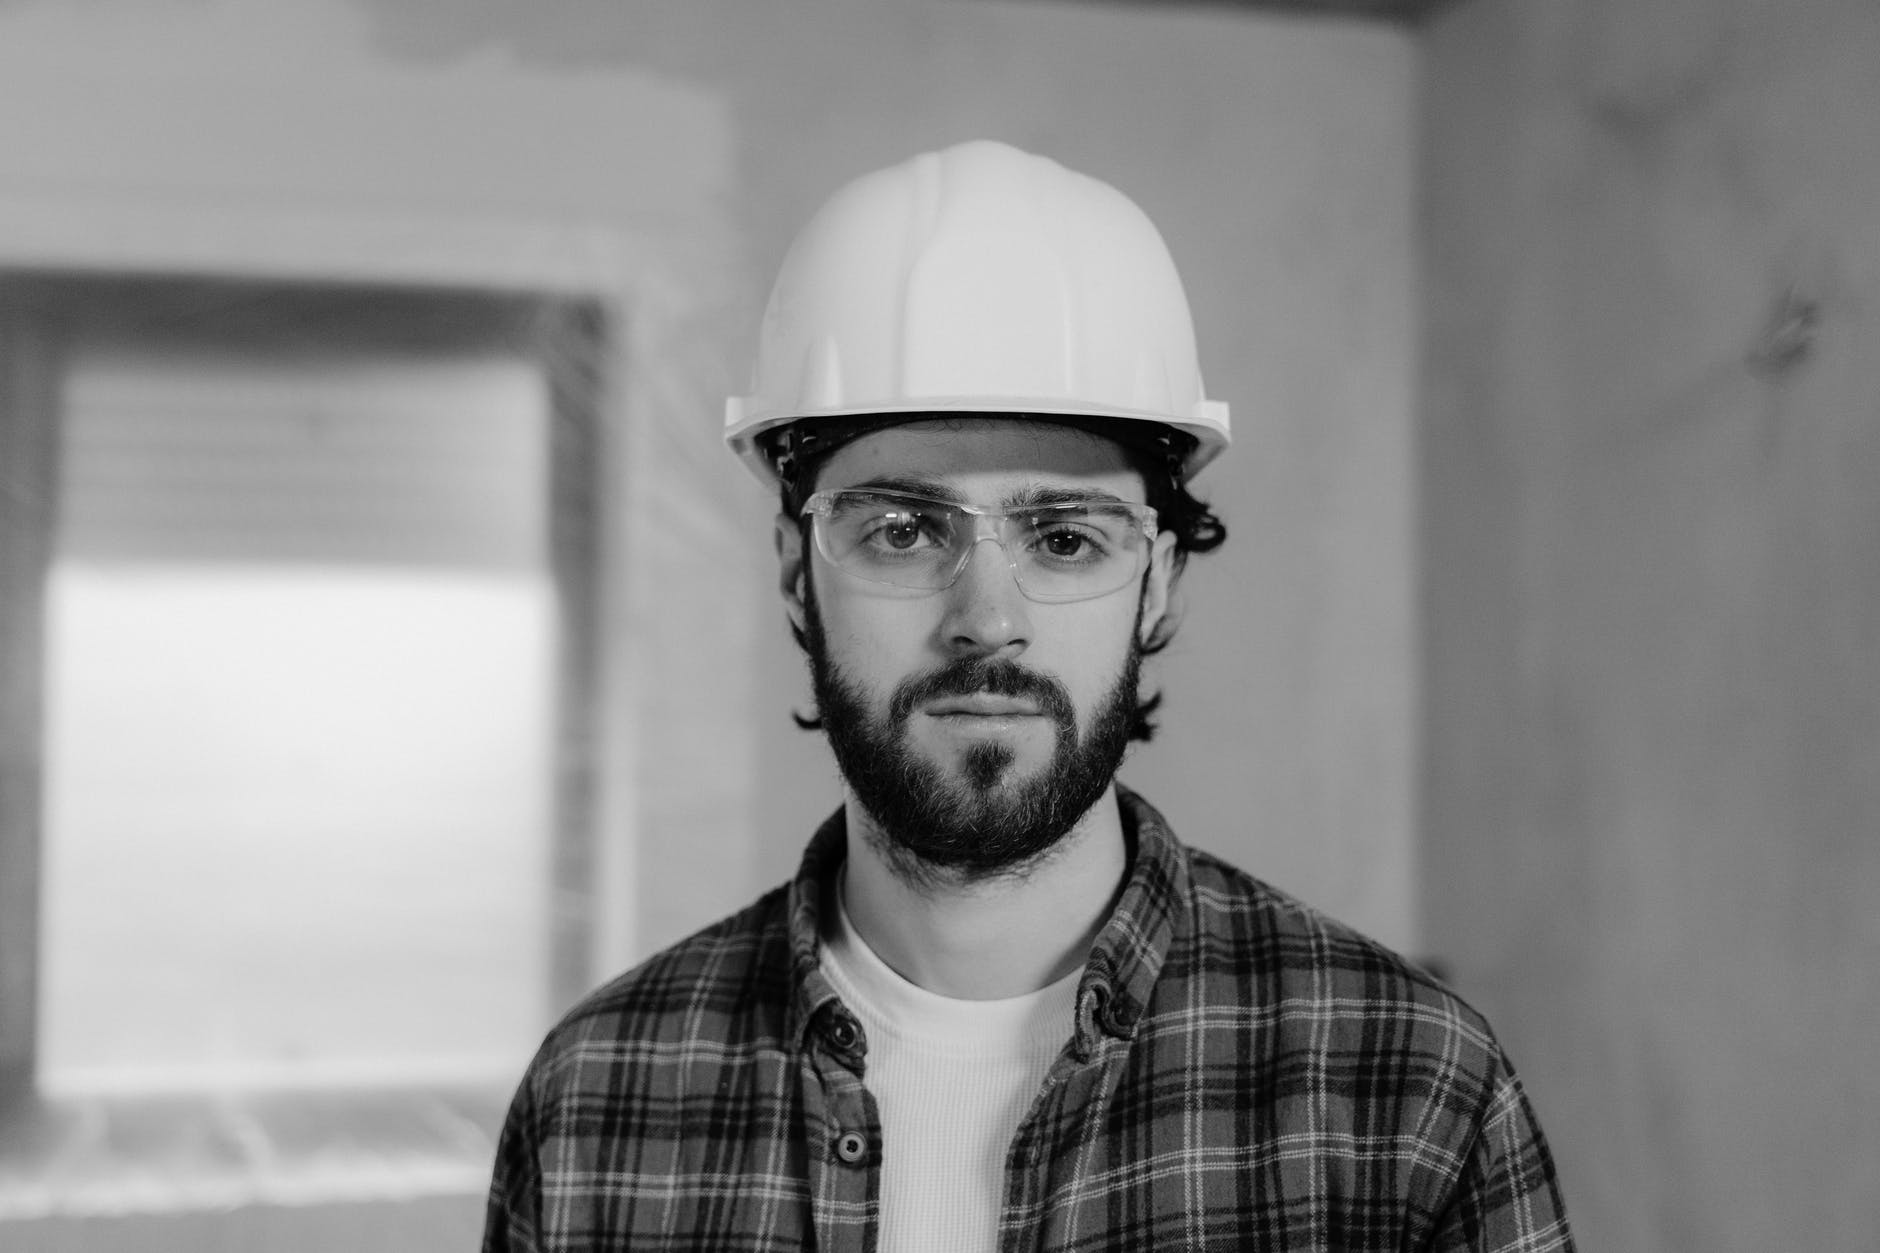 which of the following hard hats are not approved by ANSI